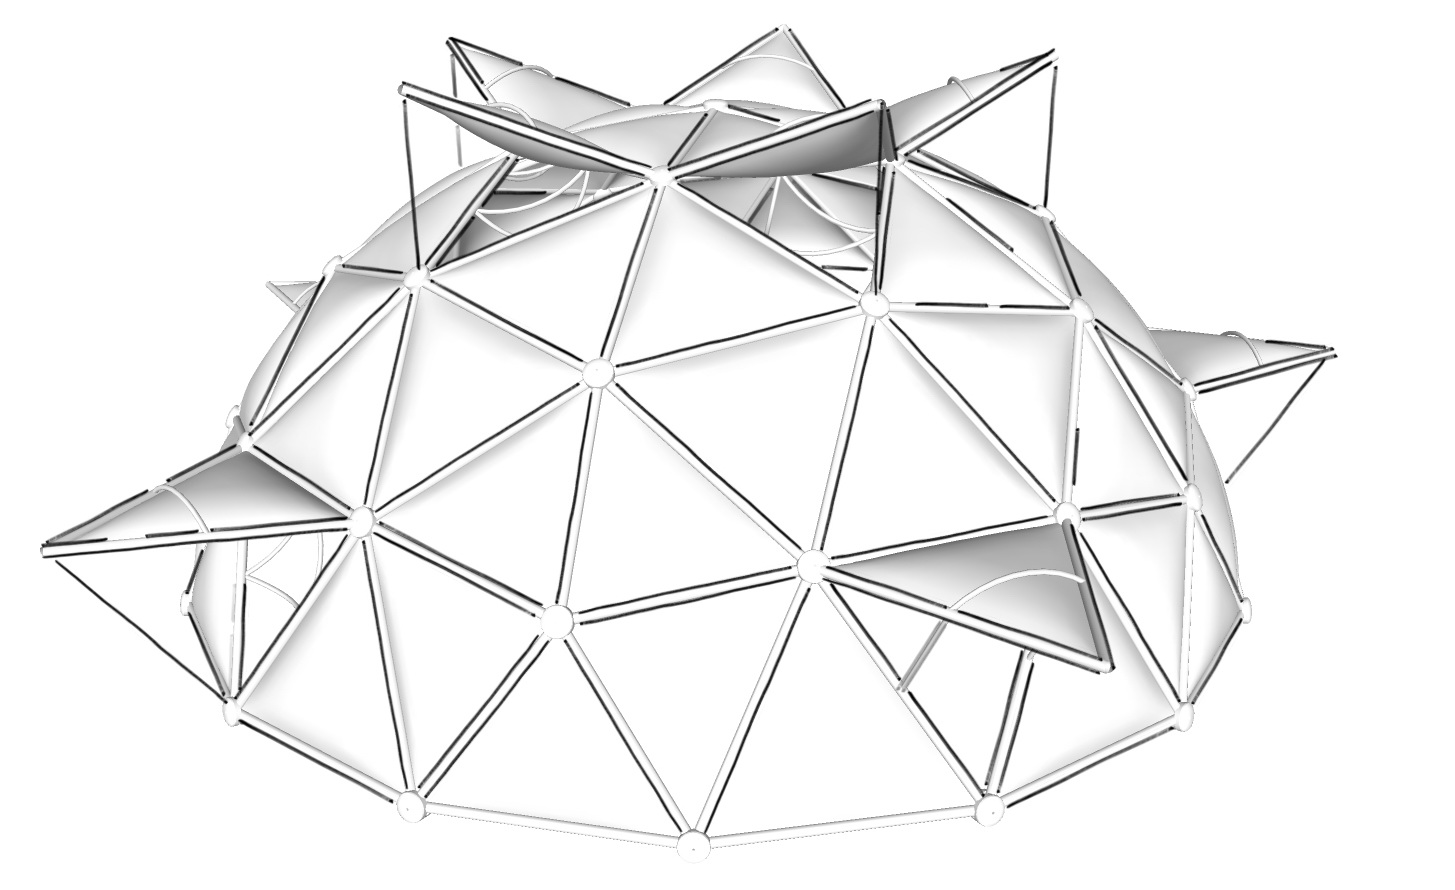 Geodesic Domes for Permaculture   Solar Domes, Greenhouses